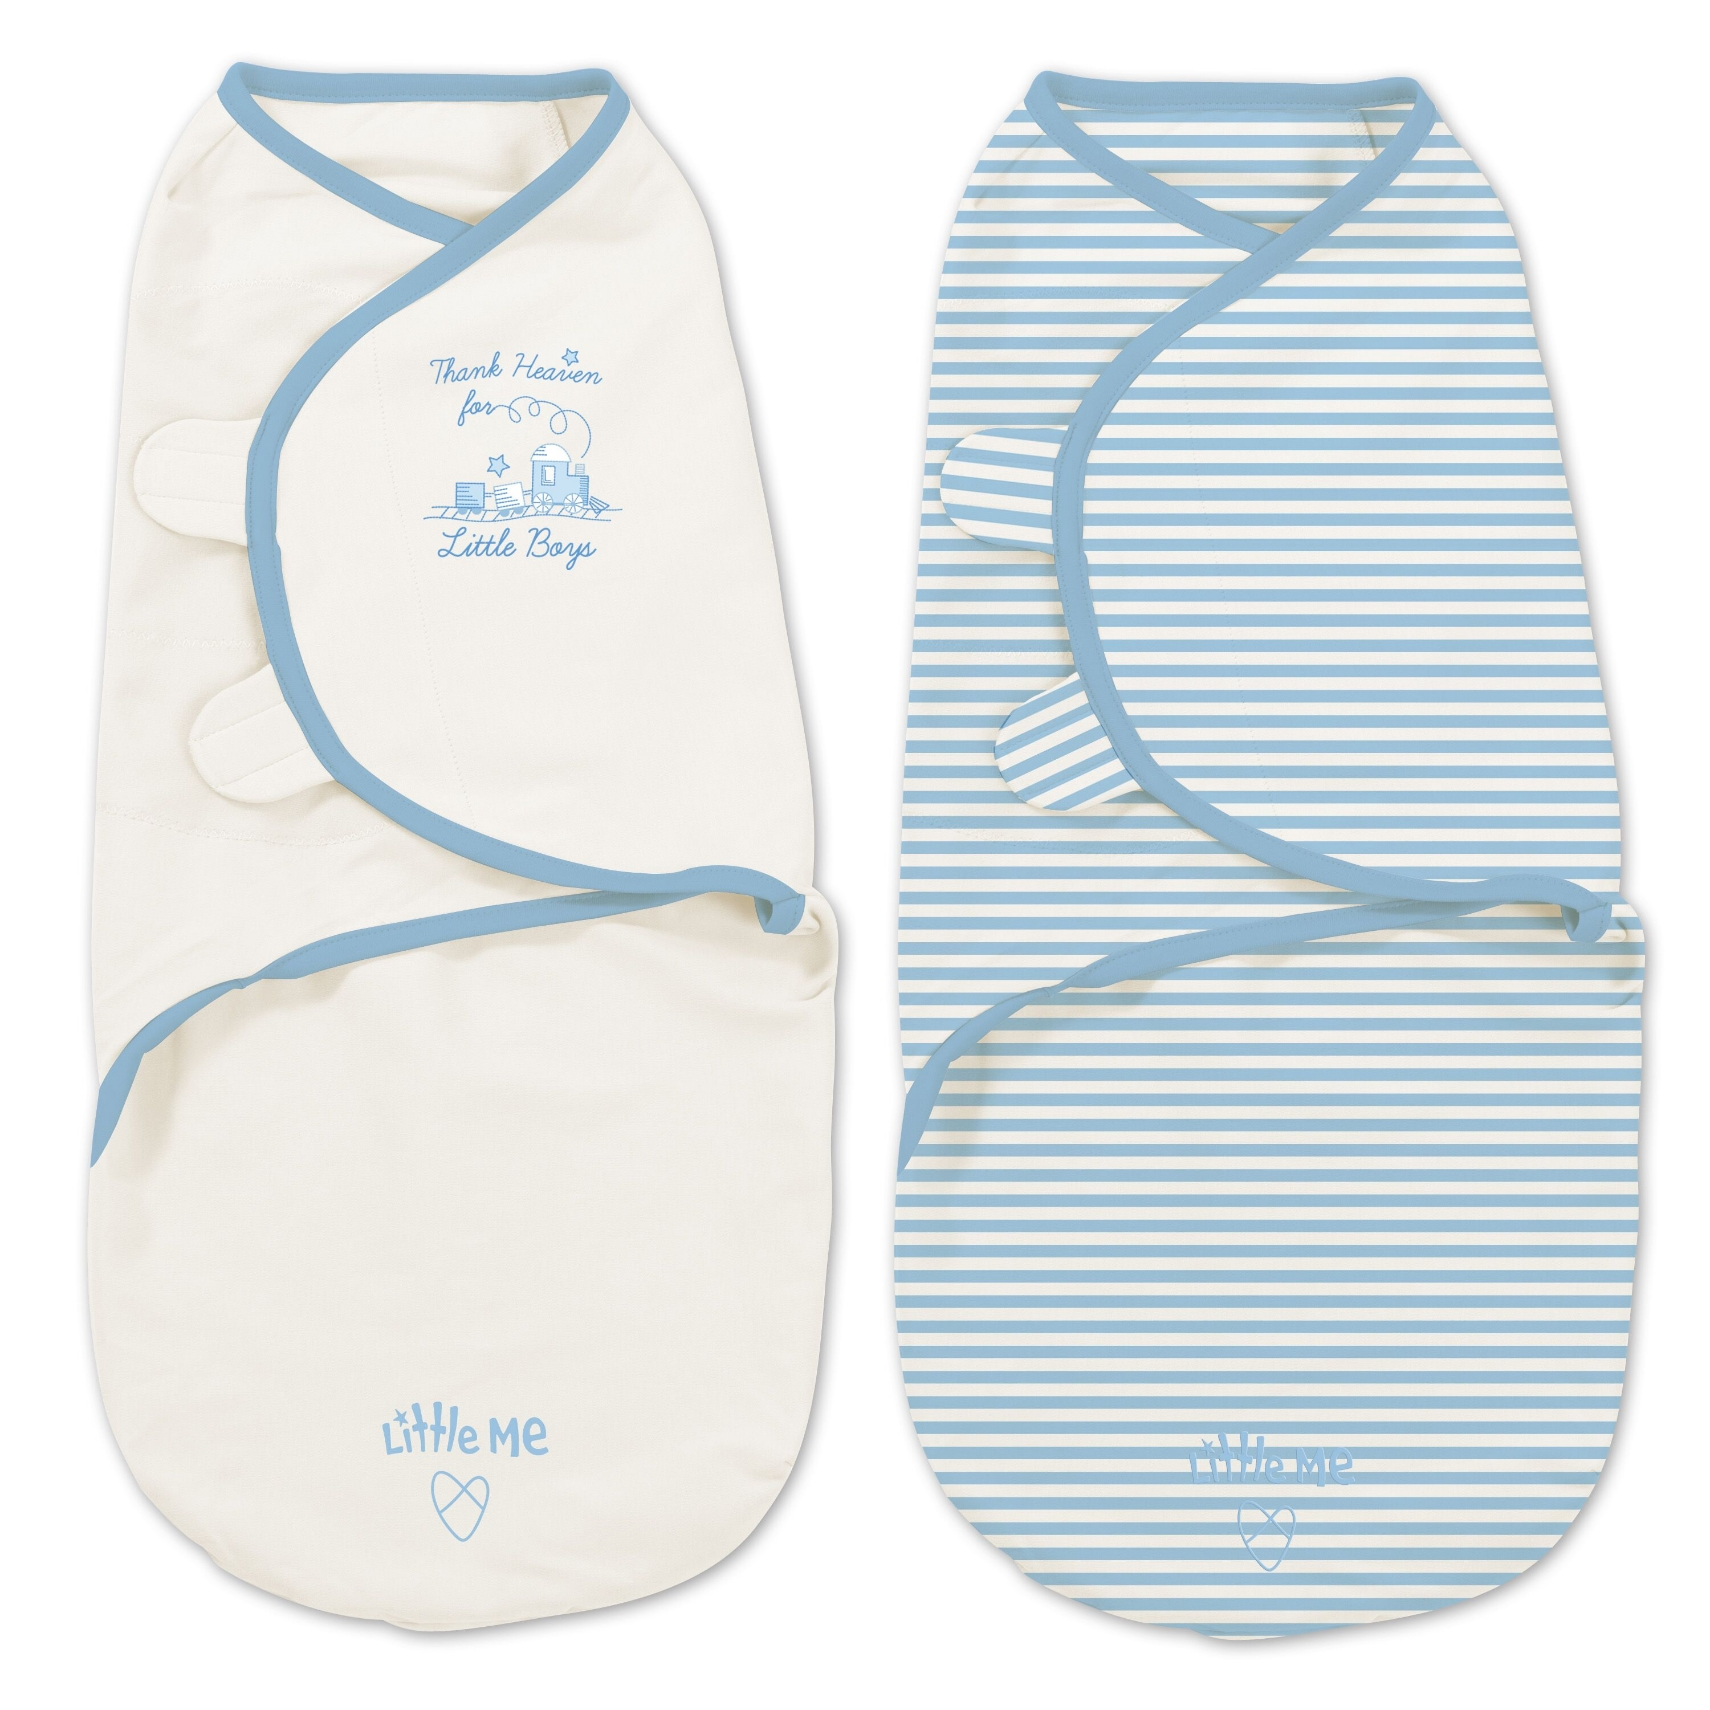 Little Me Original Swaddle 2-PK Thank Heaven for Little Boys (SM)